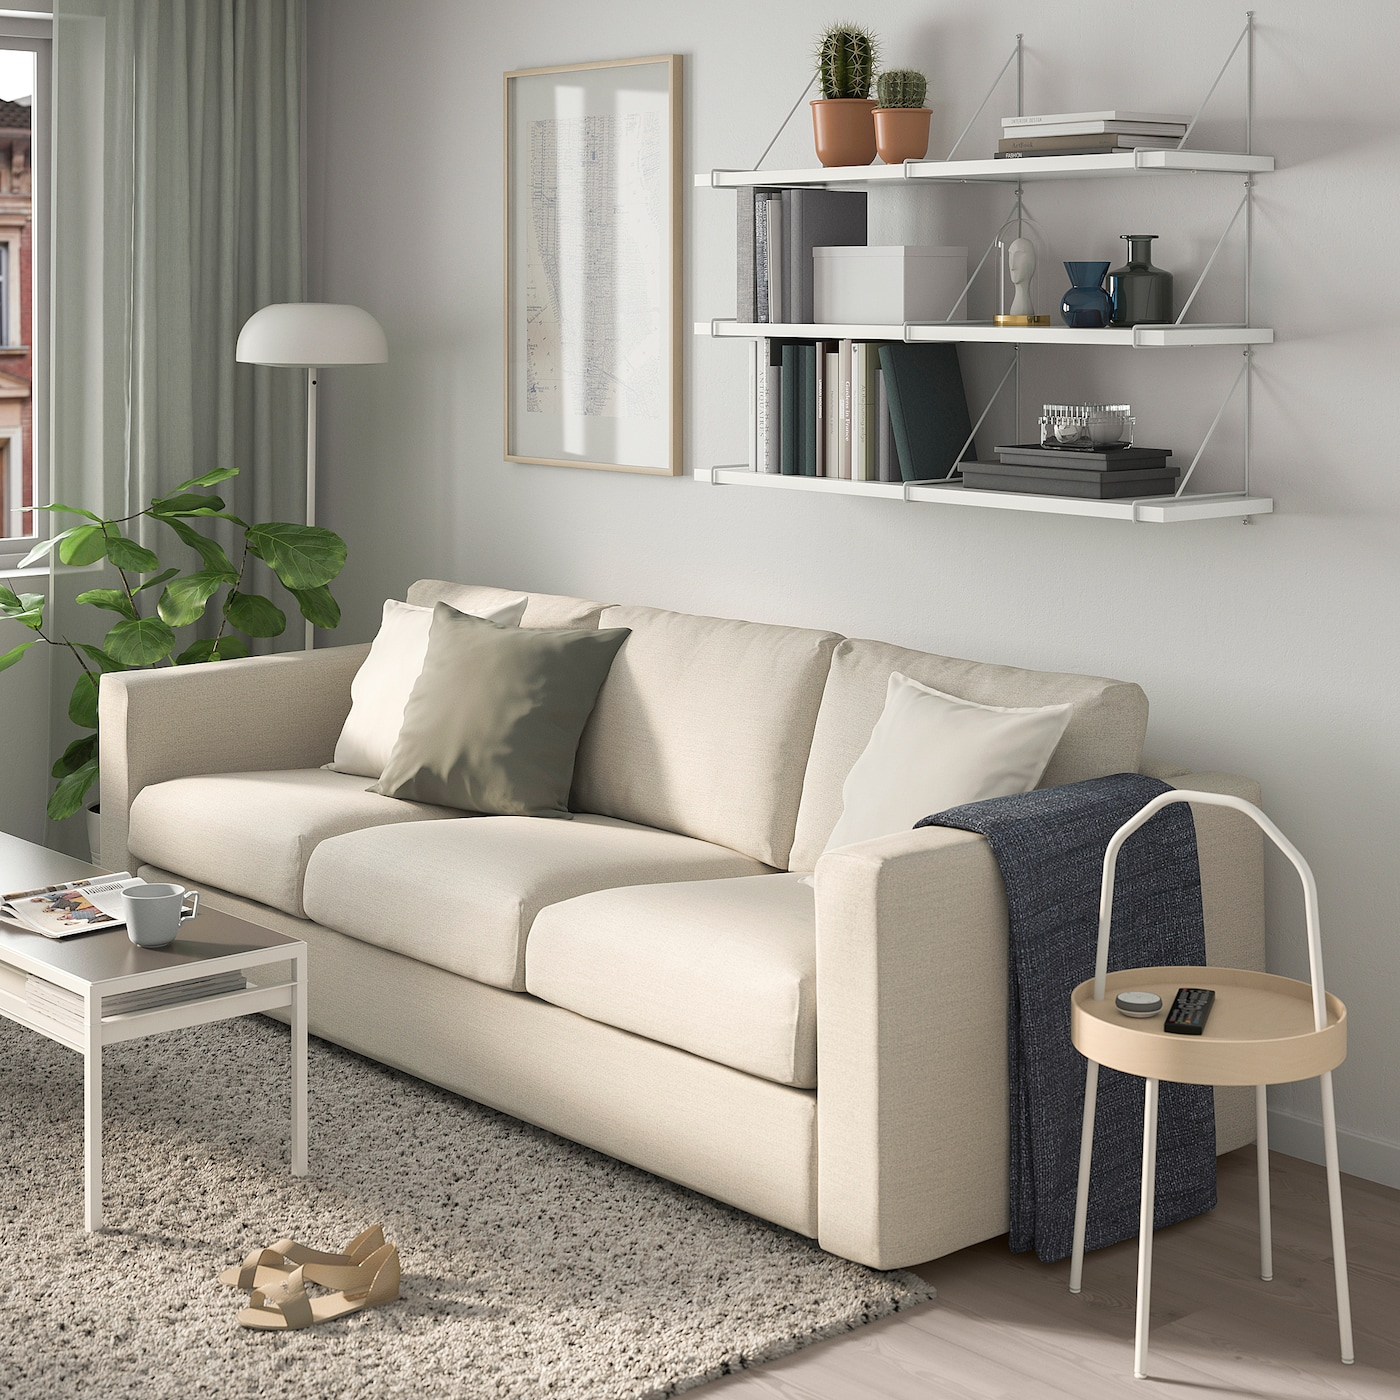 """BERGSHULT / PERSHULT Wall Shelf Combination, White, White, 47 1/4x11 3/4"""". Shop Today! - IKEA"""